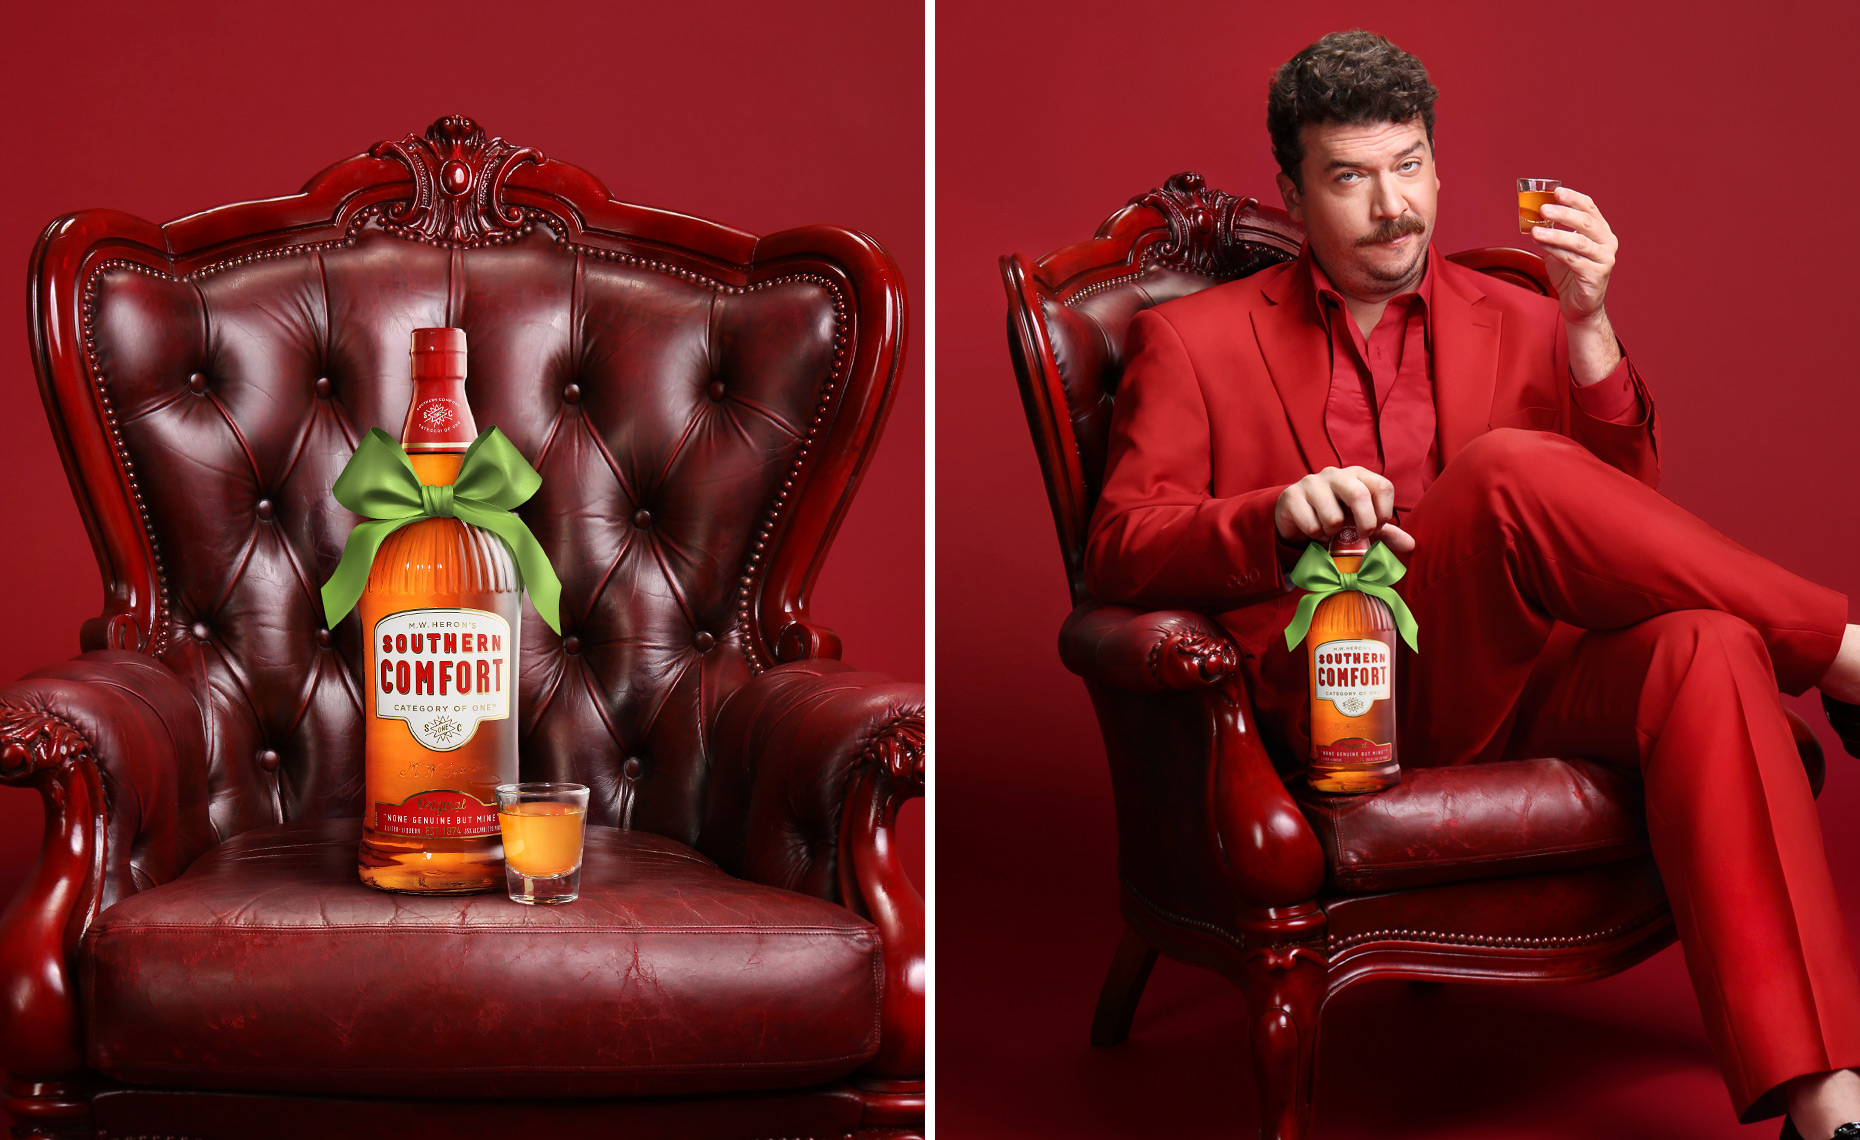 Danny McBride for Southern Comfort © Dale May